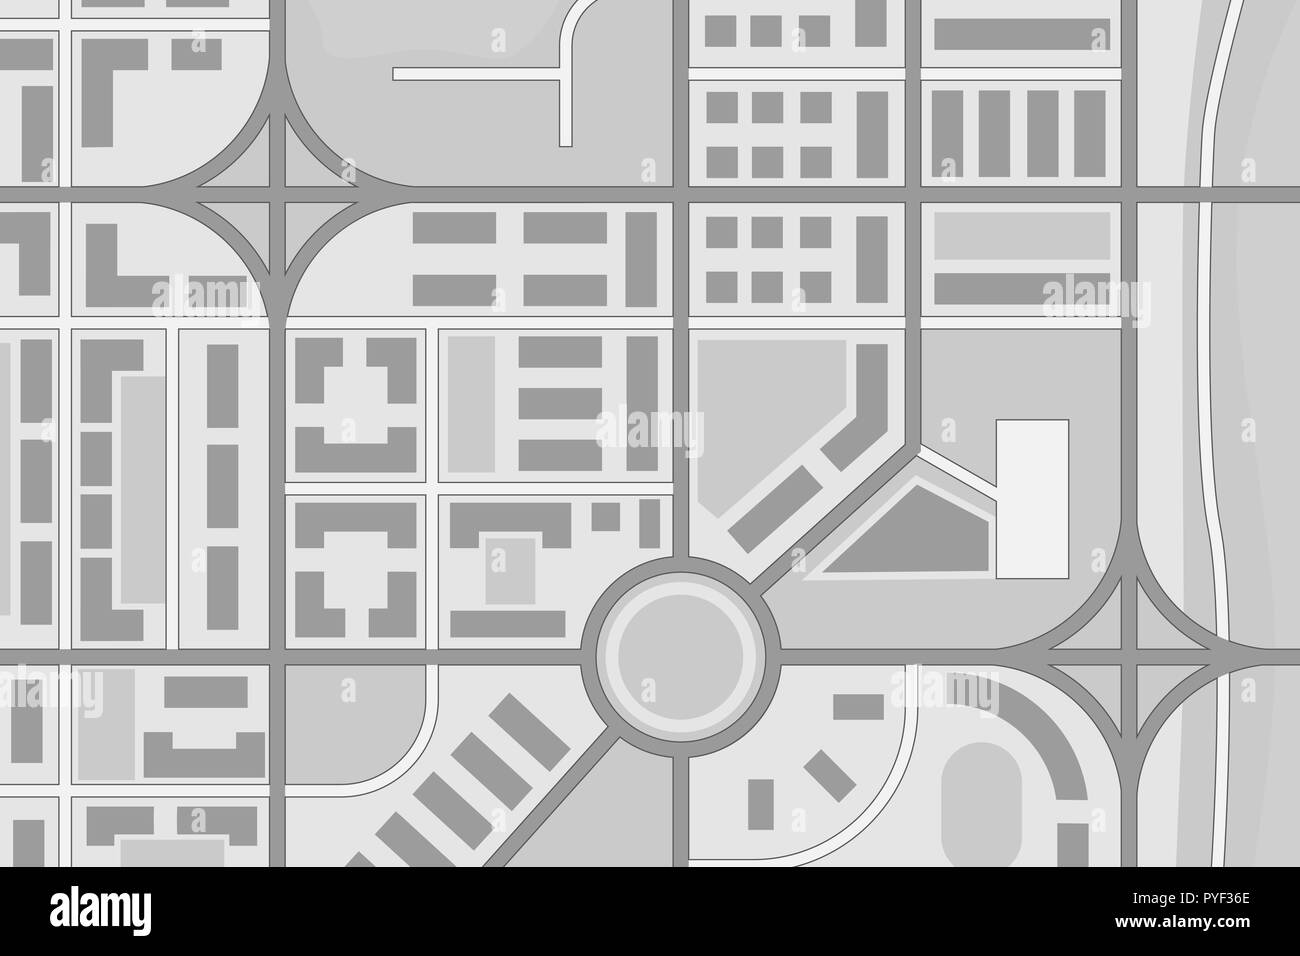 Abstract city map. Black and white - Stock Vector